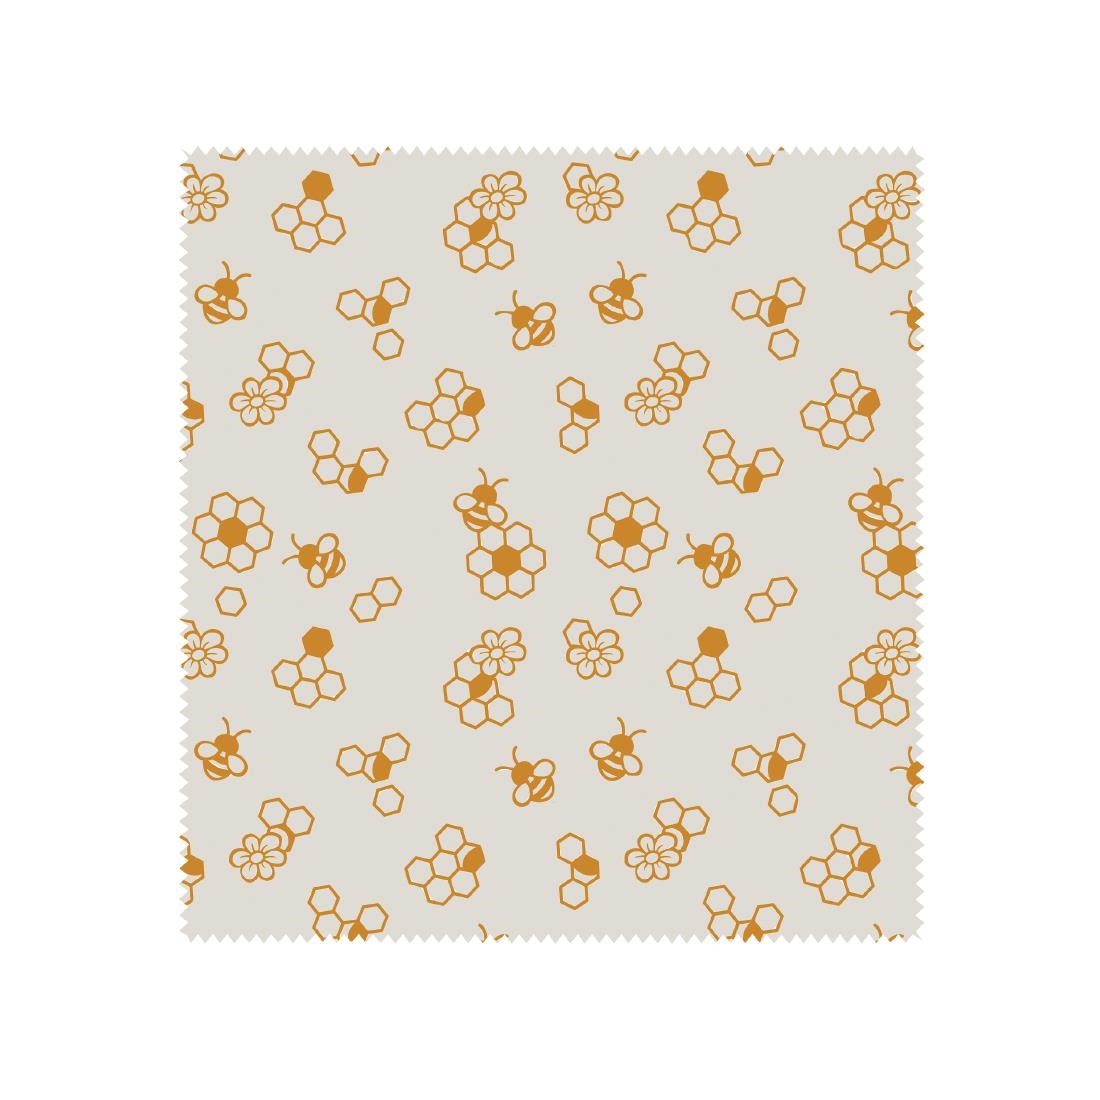 Image of Bees Wax Wrap Honeycomb Assorted (Pack of 10) Pack of 10